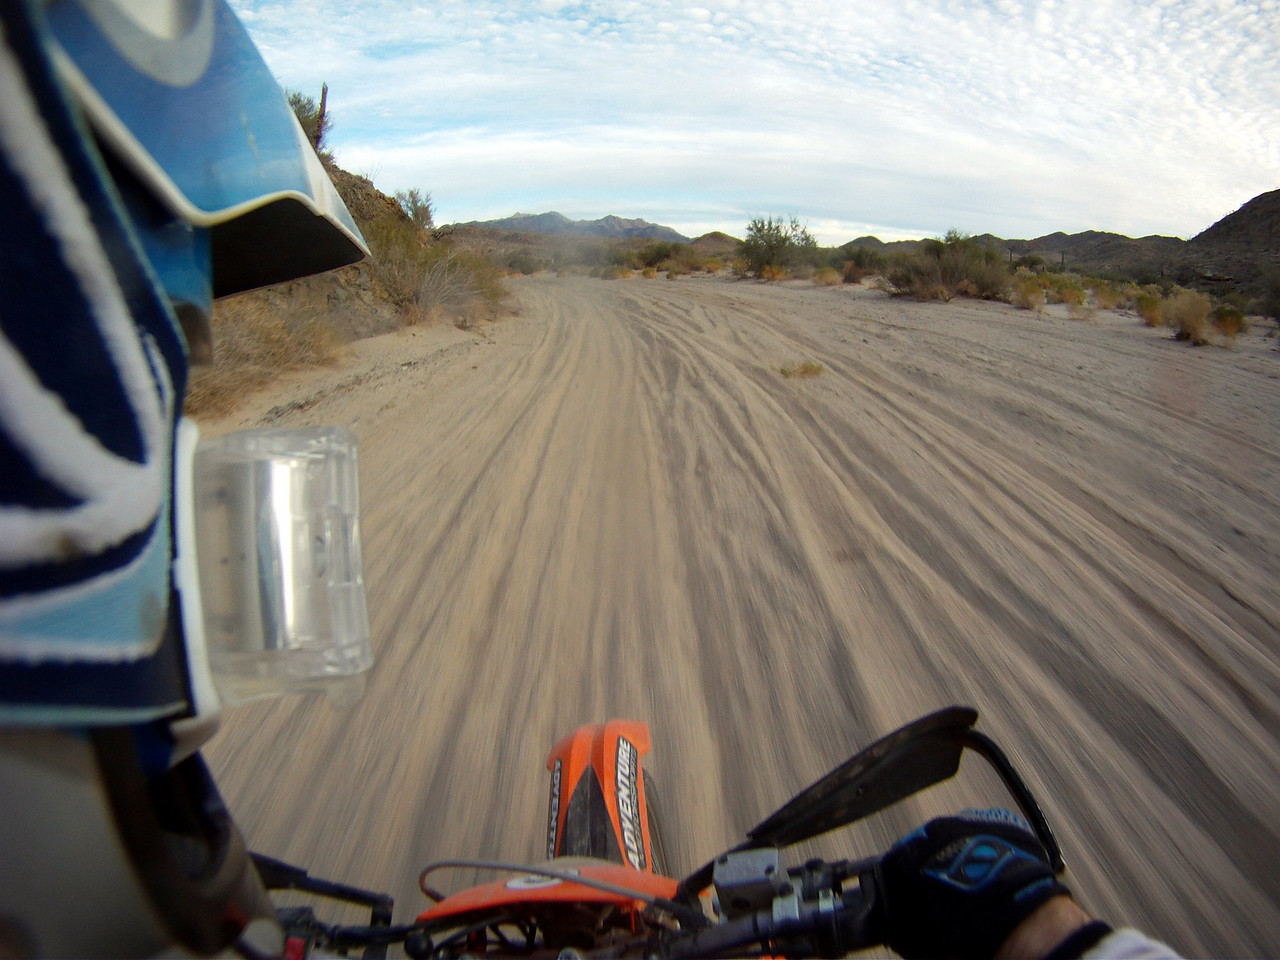 fast sand/silt at the end of the wash